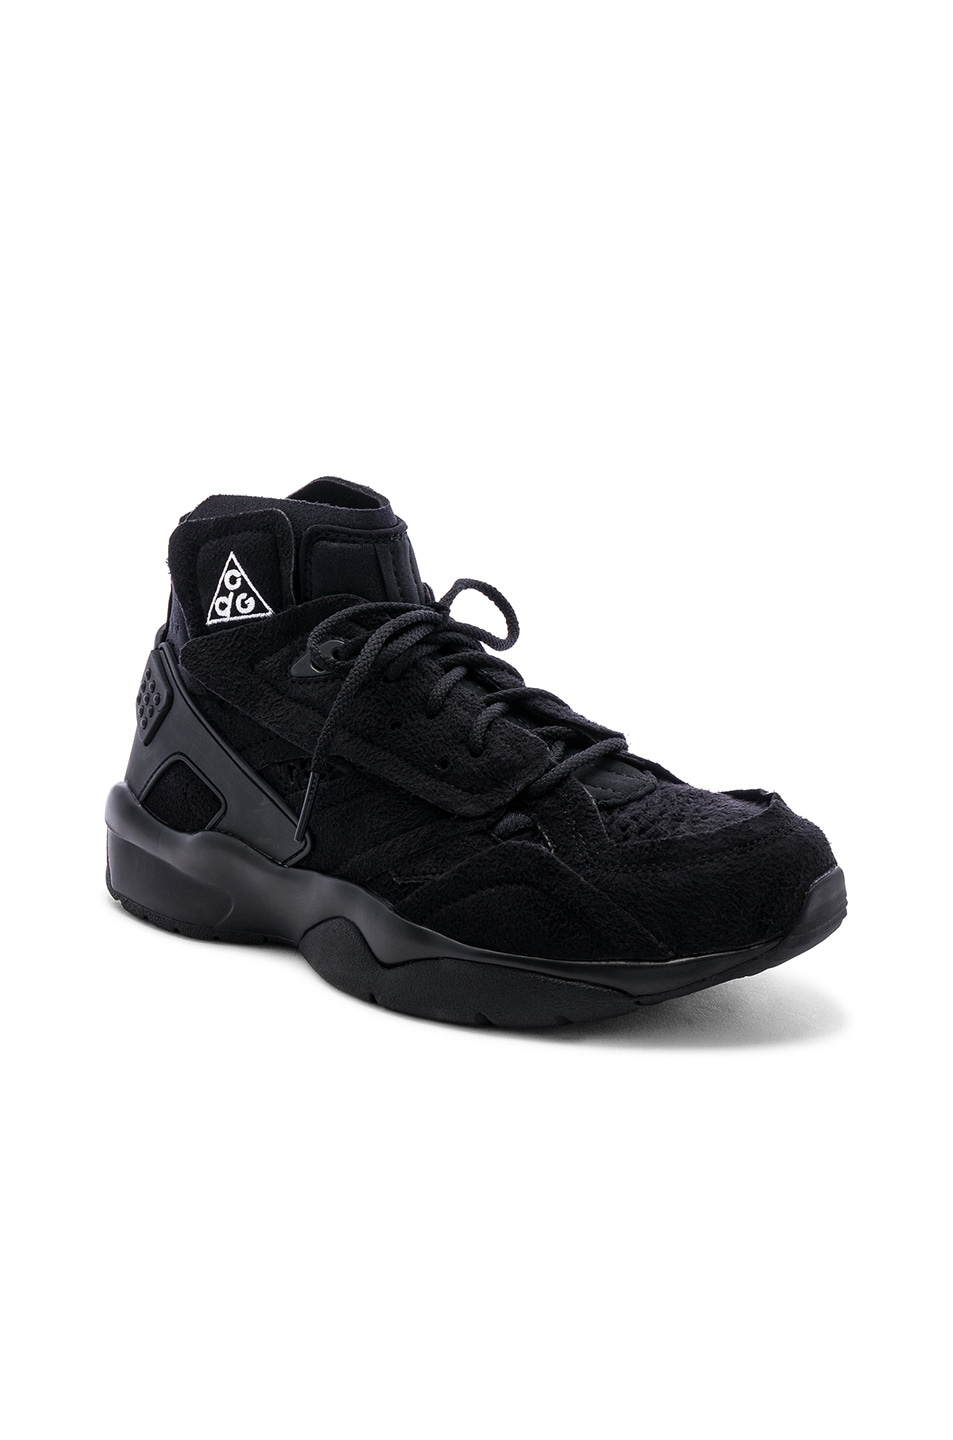 best sneakers 5256a a2a29 Image 1 of Comme Des Garcons Homme Plus x NIKE ACG Mowabb in Black